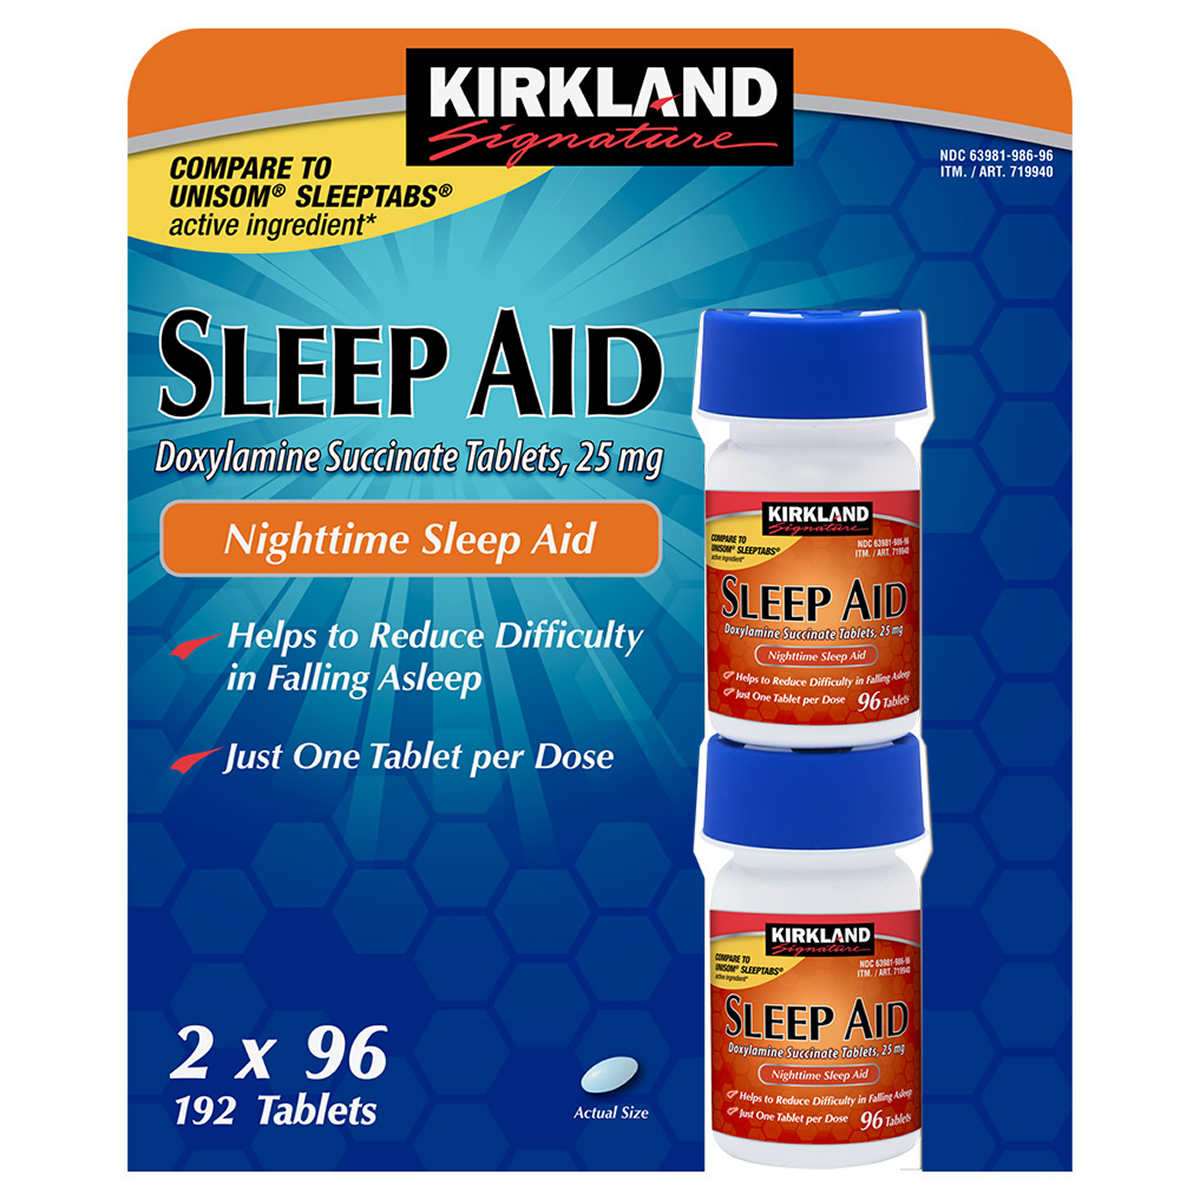 Kirkland Signature Sleep Aid 192 Tablets